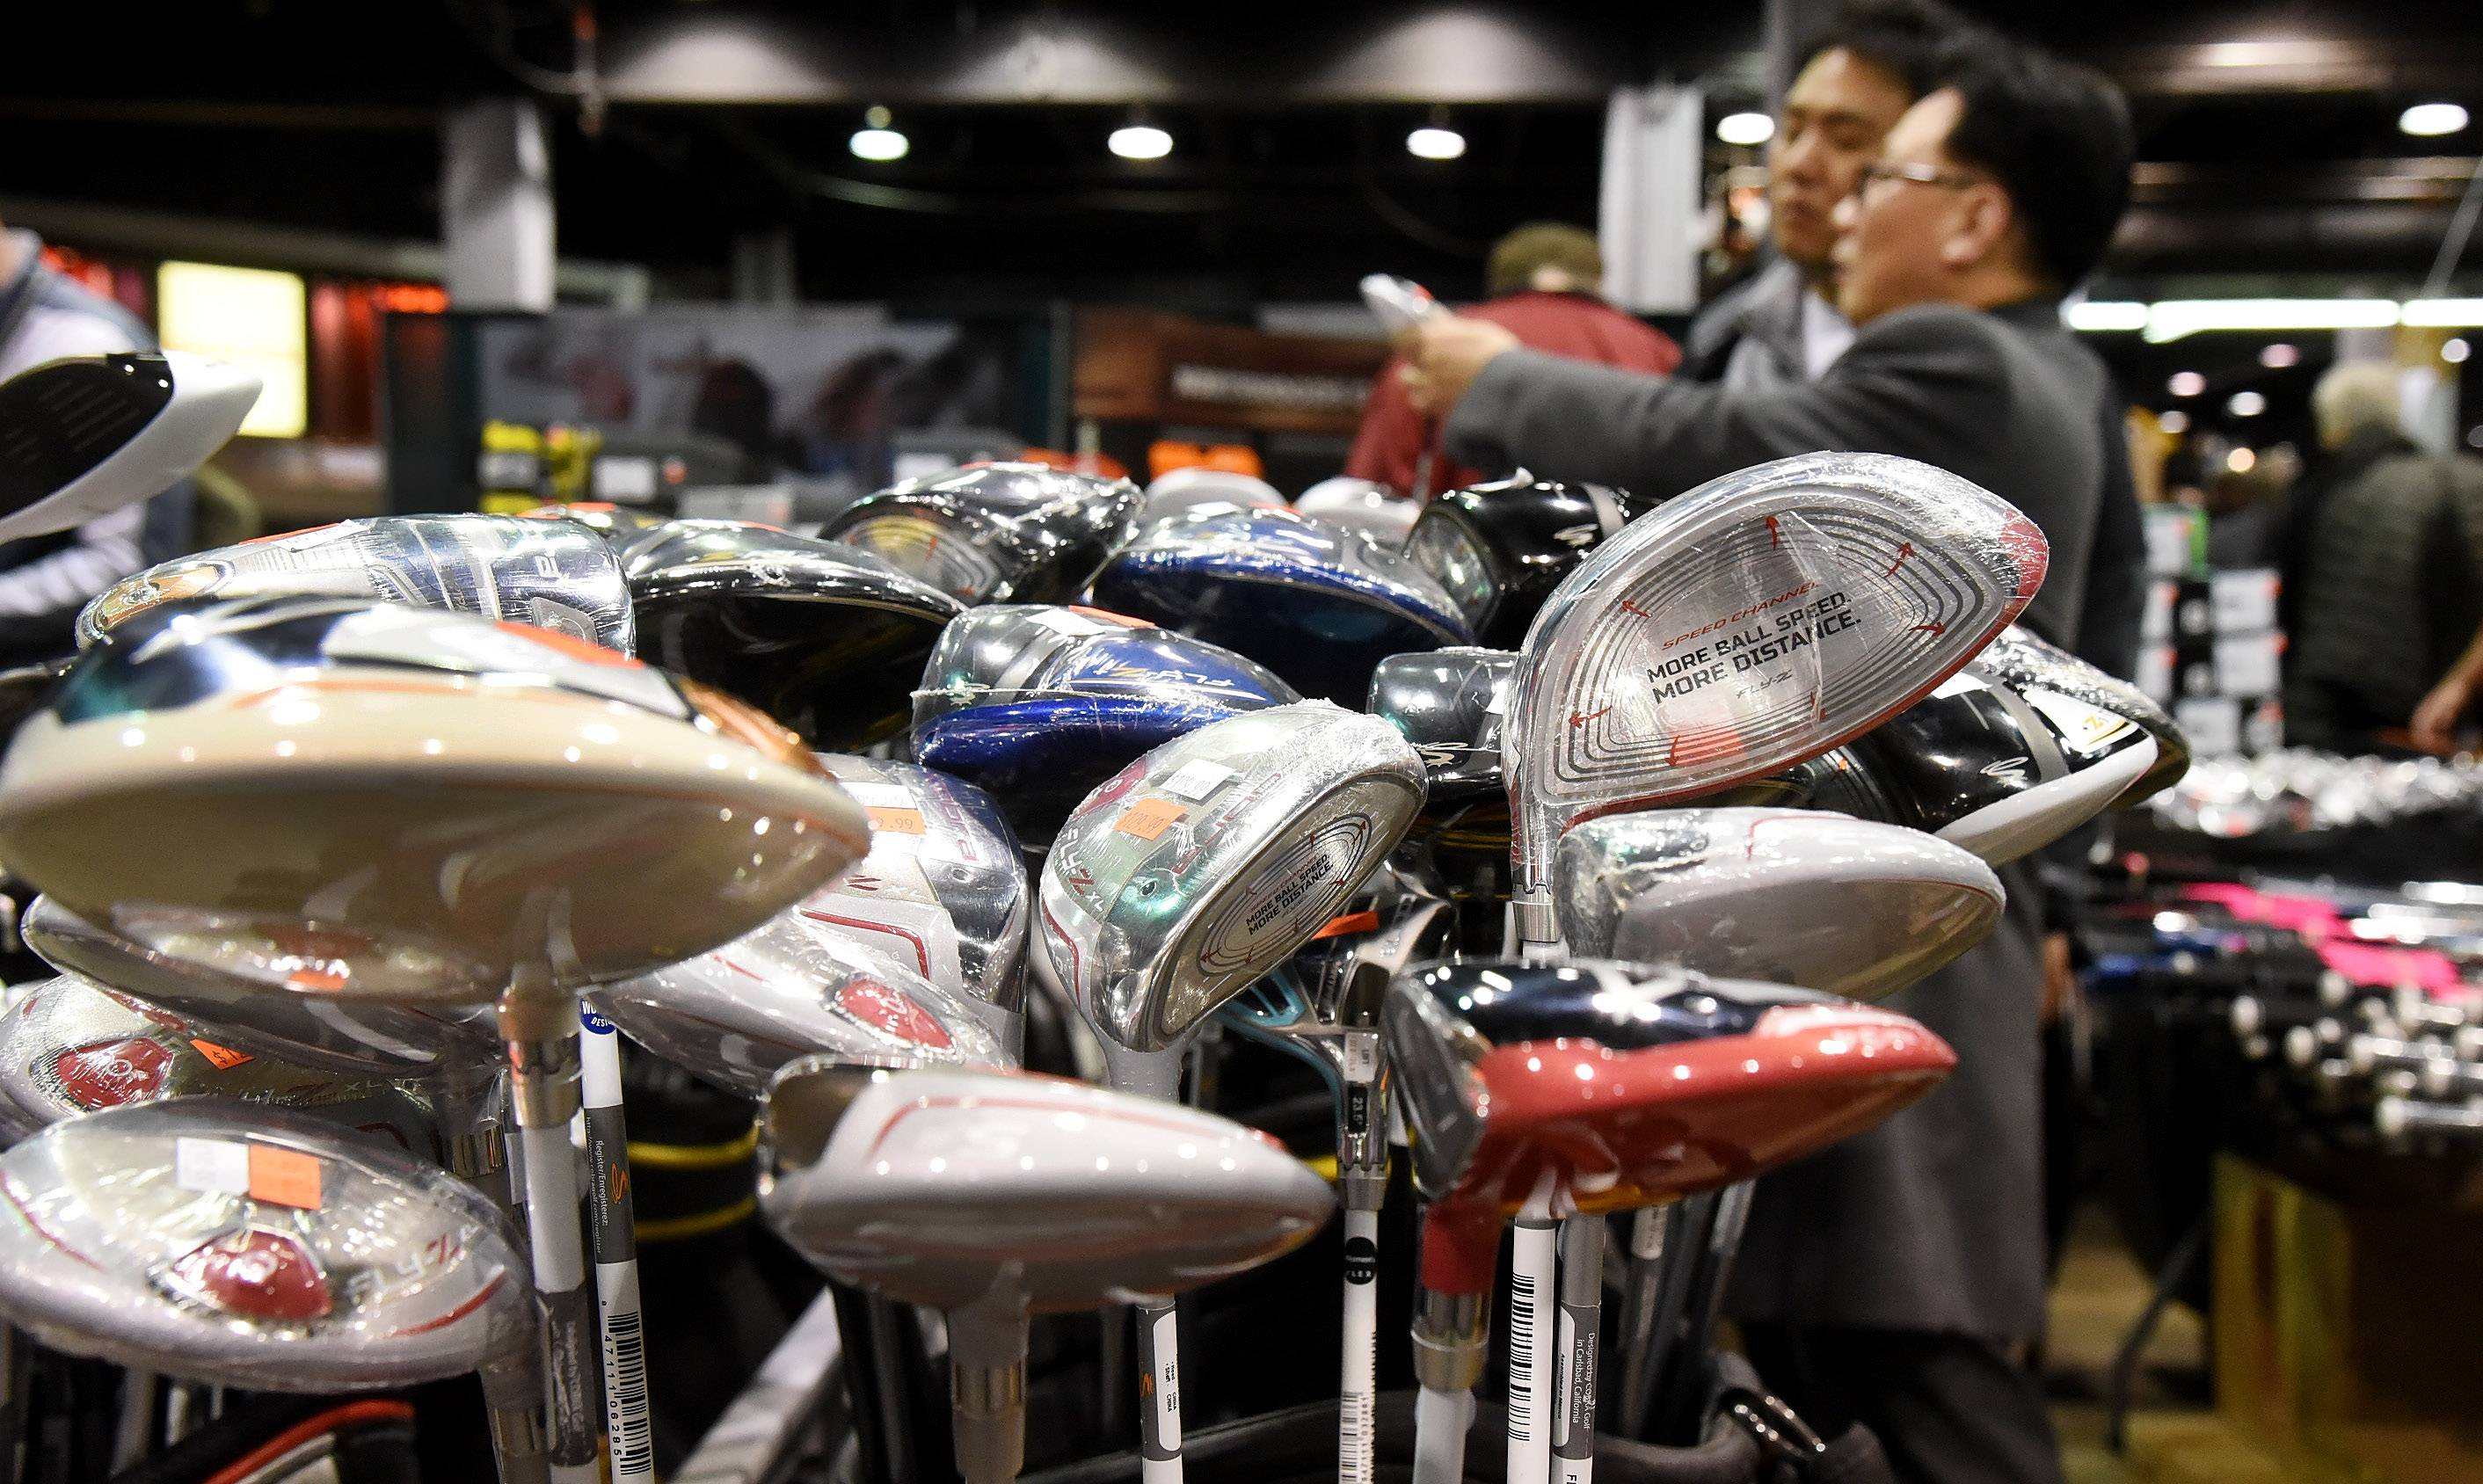 Golfers will get an upclose look at the latest equipment and more when the Chicago Golf Show runs Friday through Sunday at the Donald E. Stephens Convention Center in Rosemont.